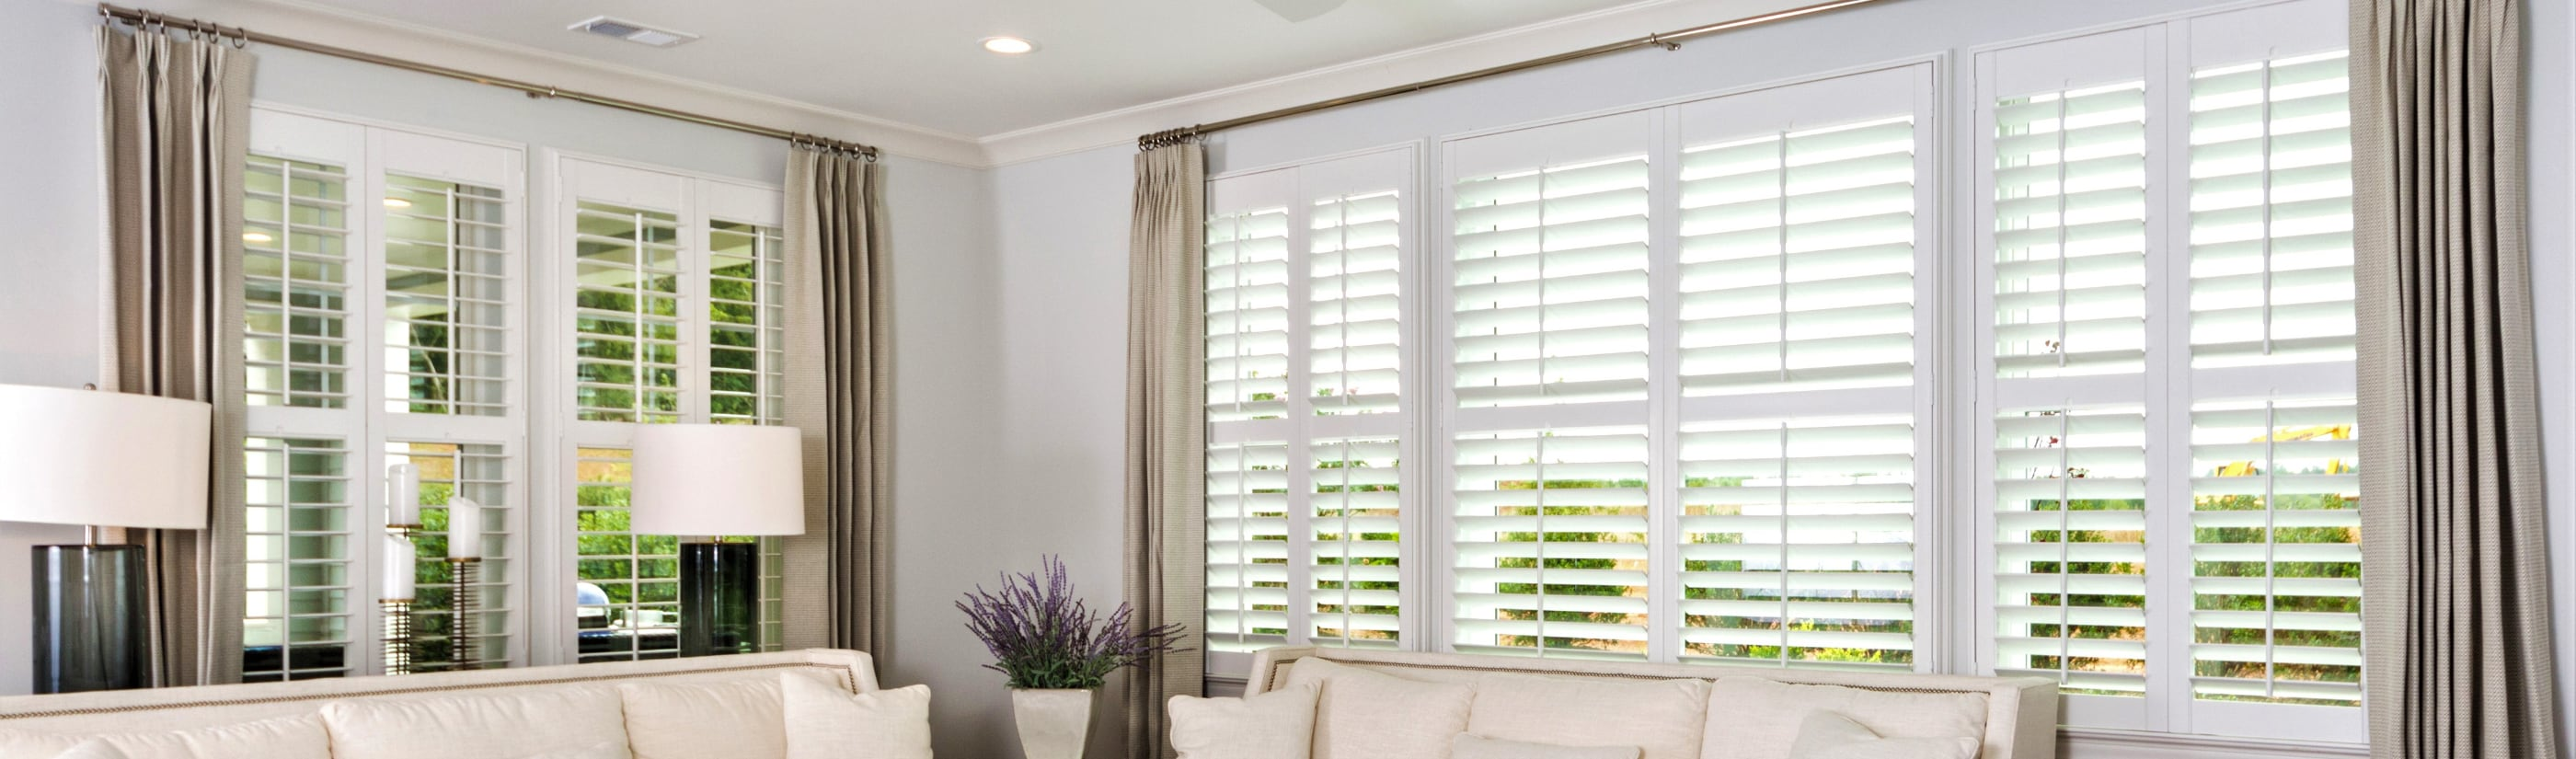 Polywood Shutters Paints In San Jose